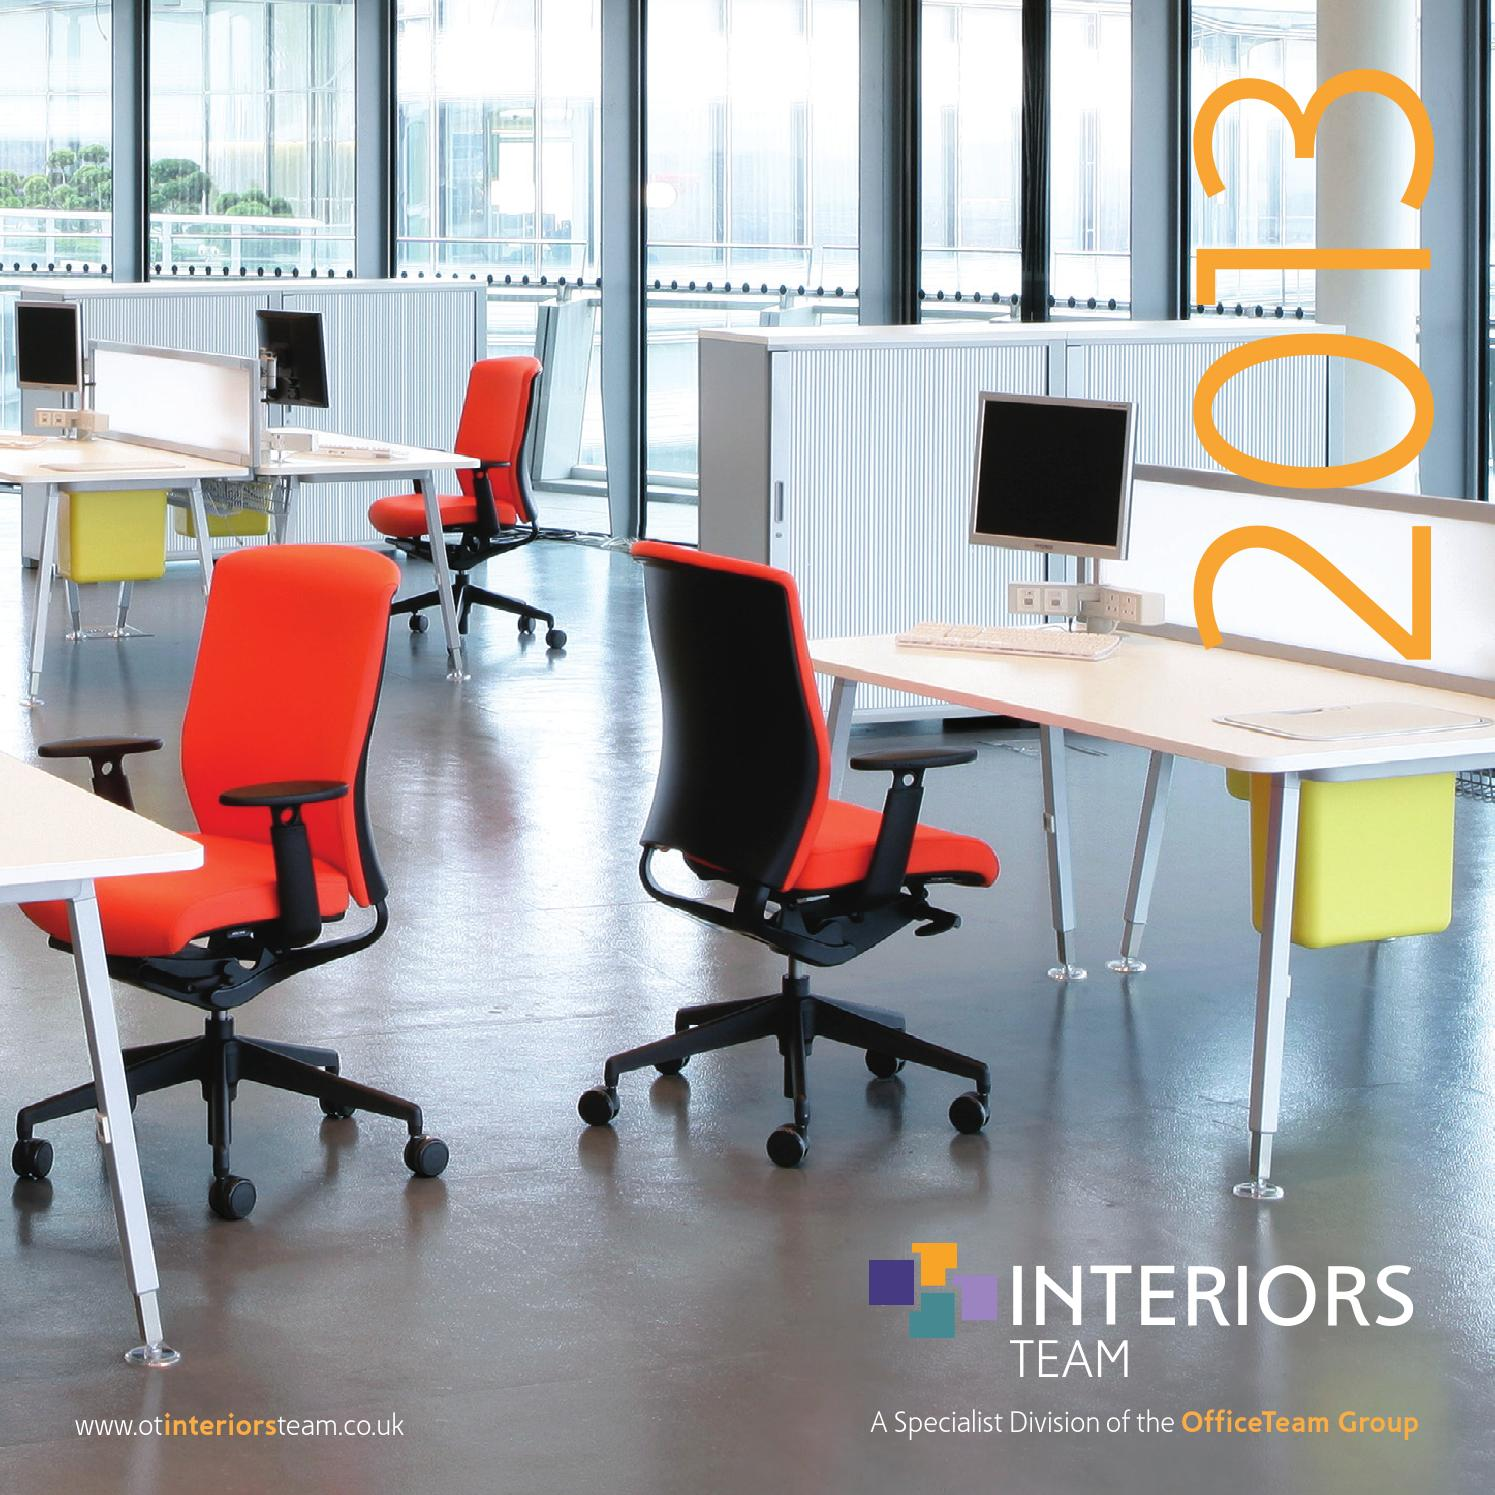 InteriorsTeam Office Furniture Catalogue 2013 By OfficeTeam   Issuu